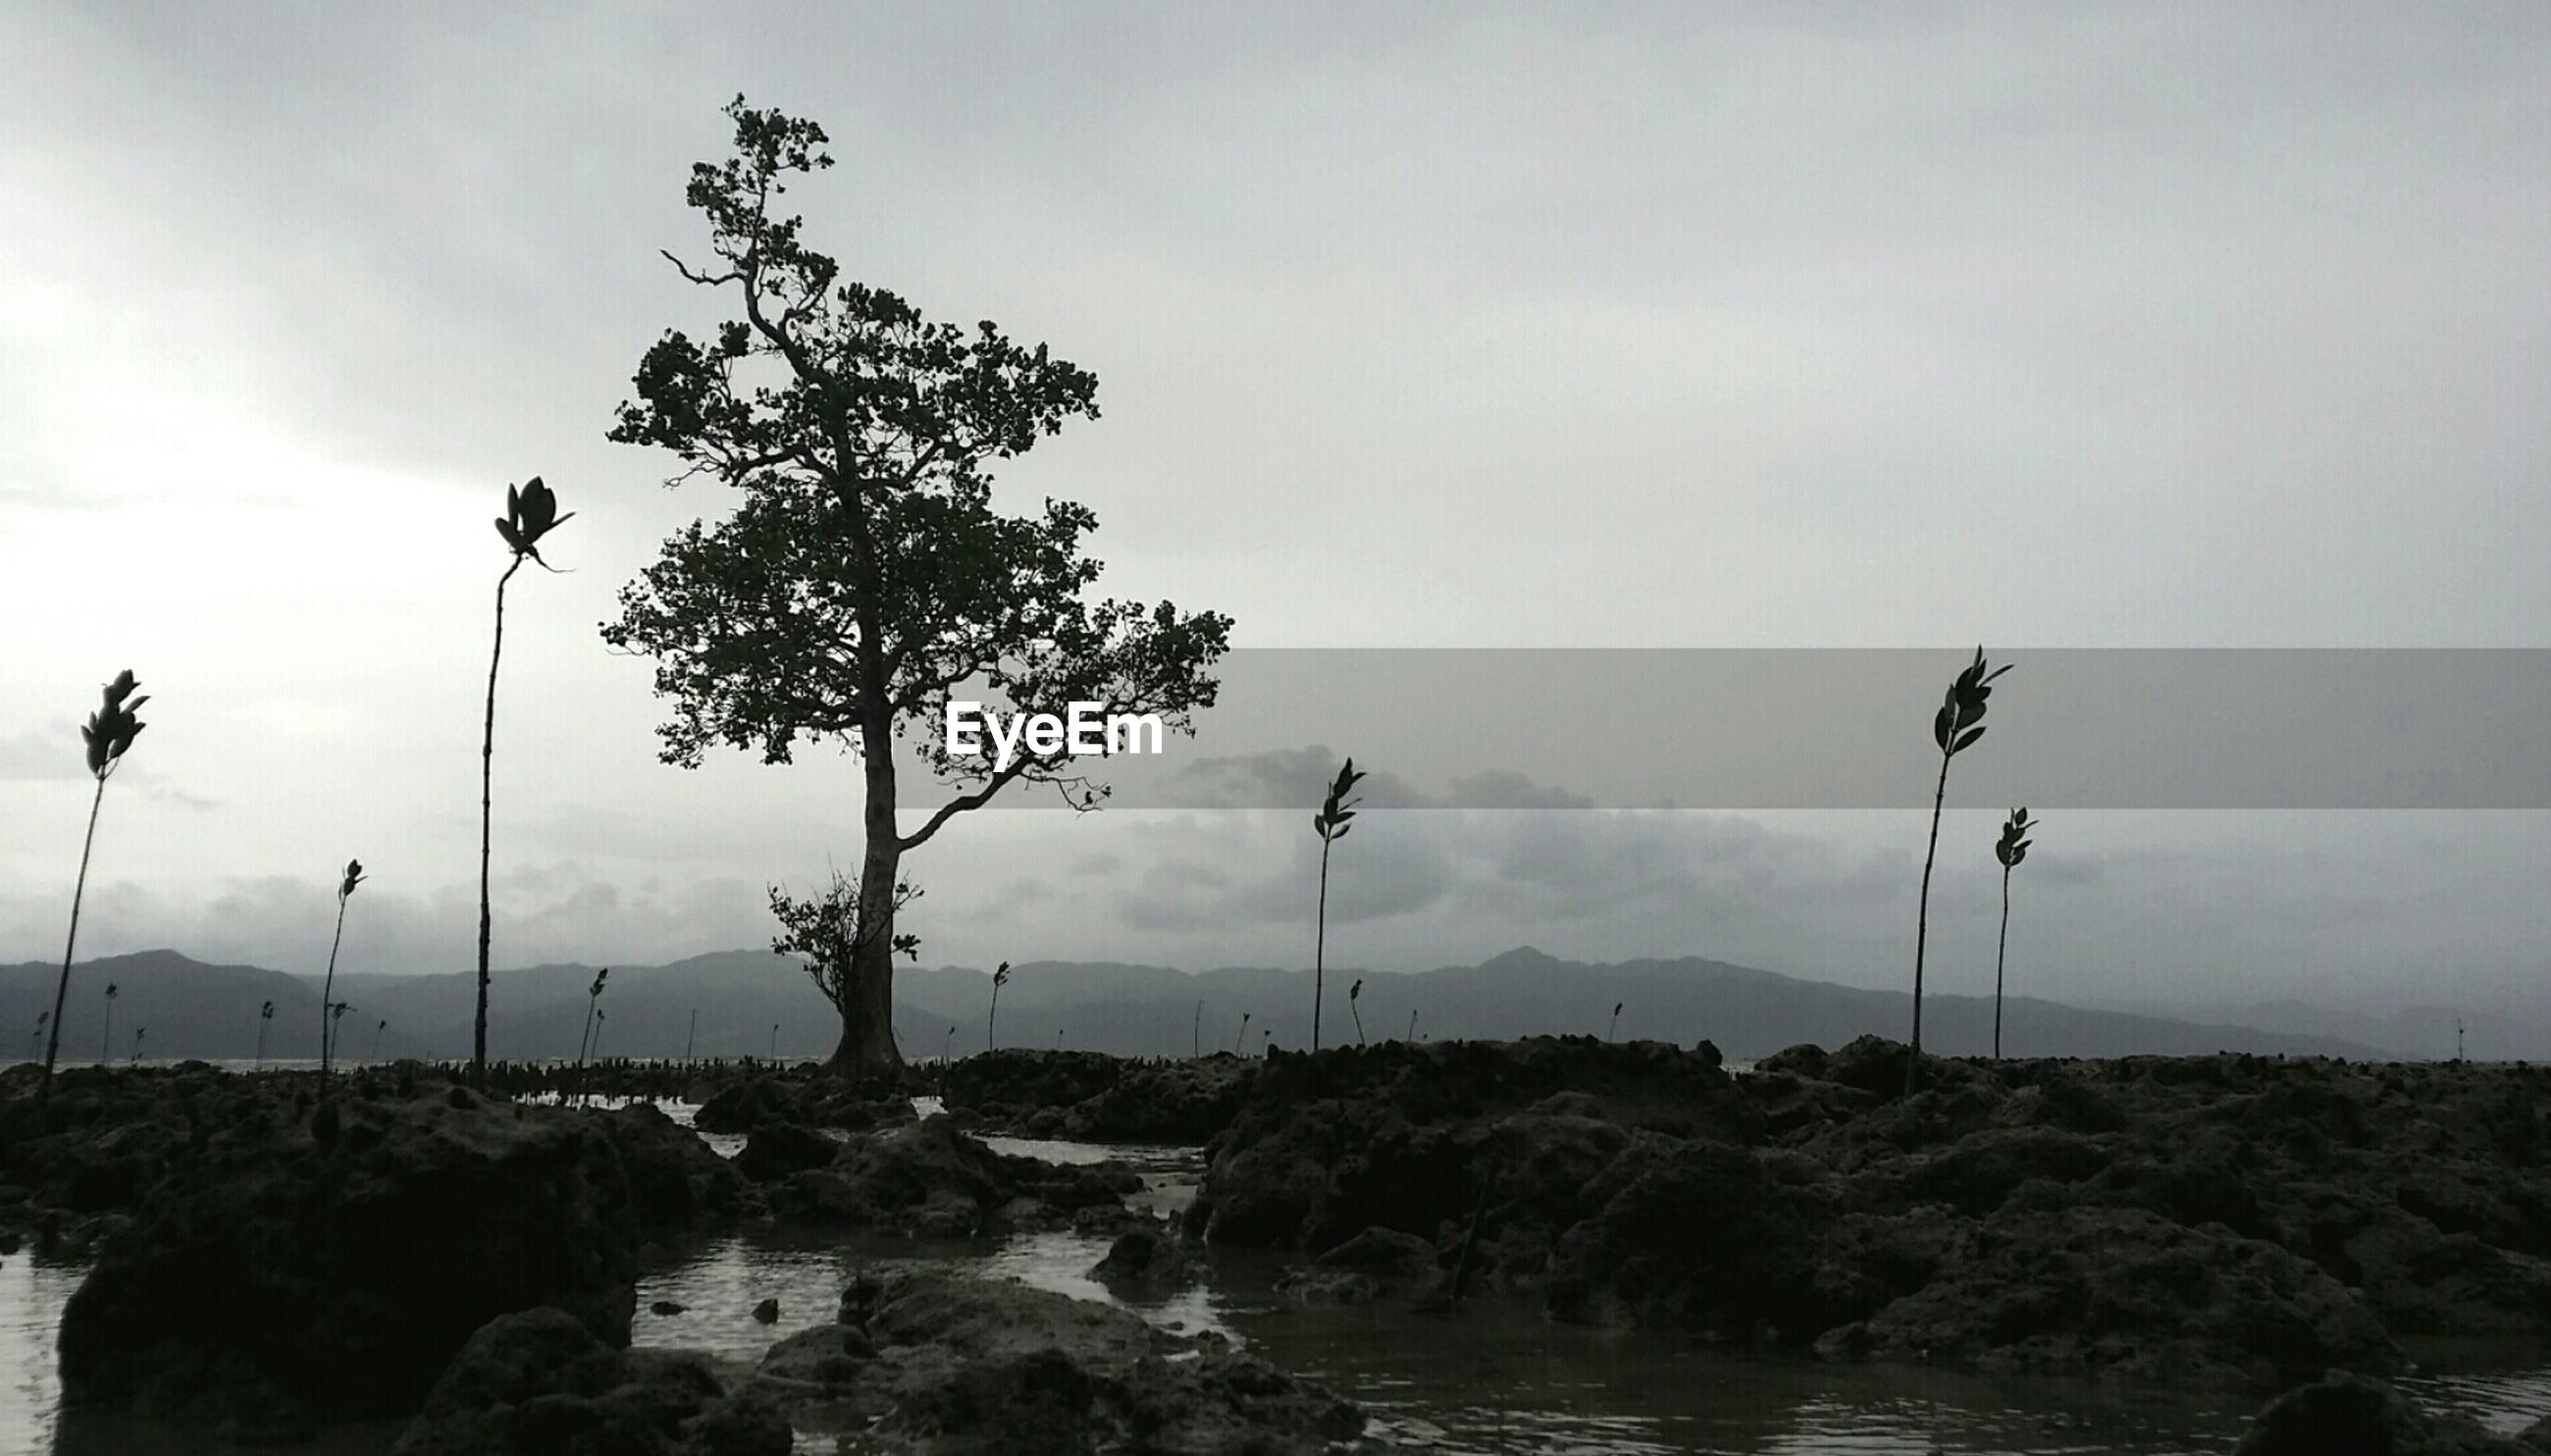 Tree on rocky beach at cagbalete island against sky